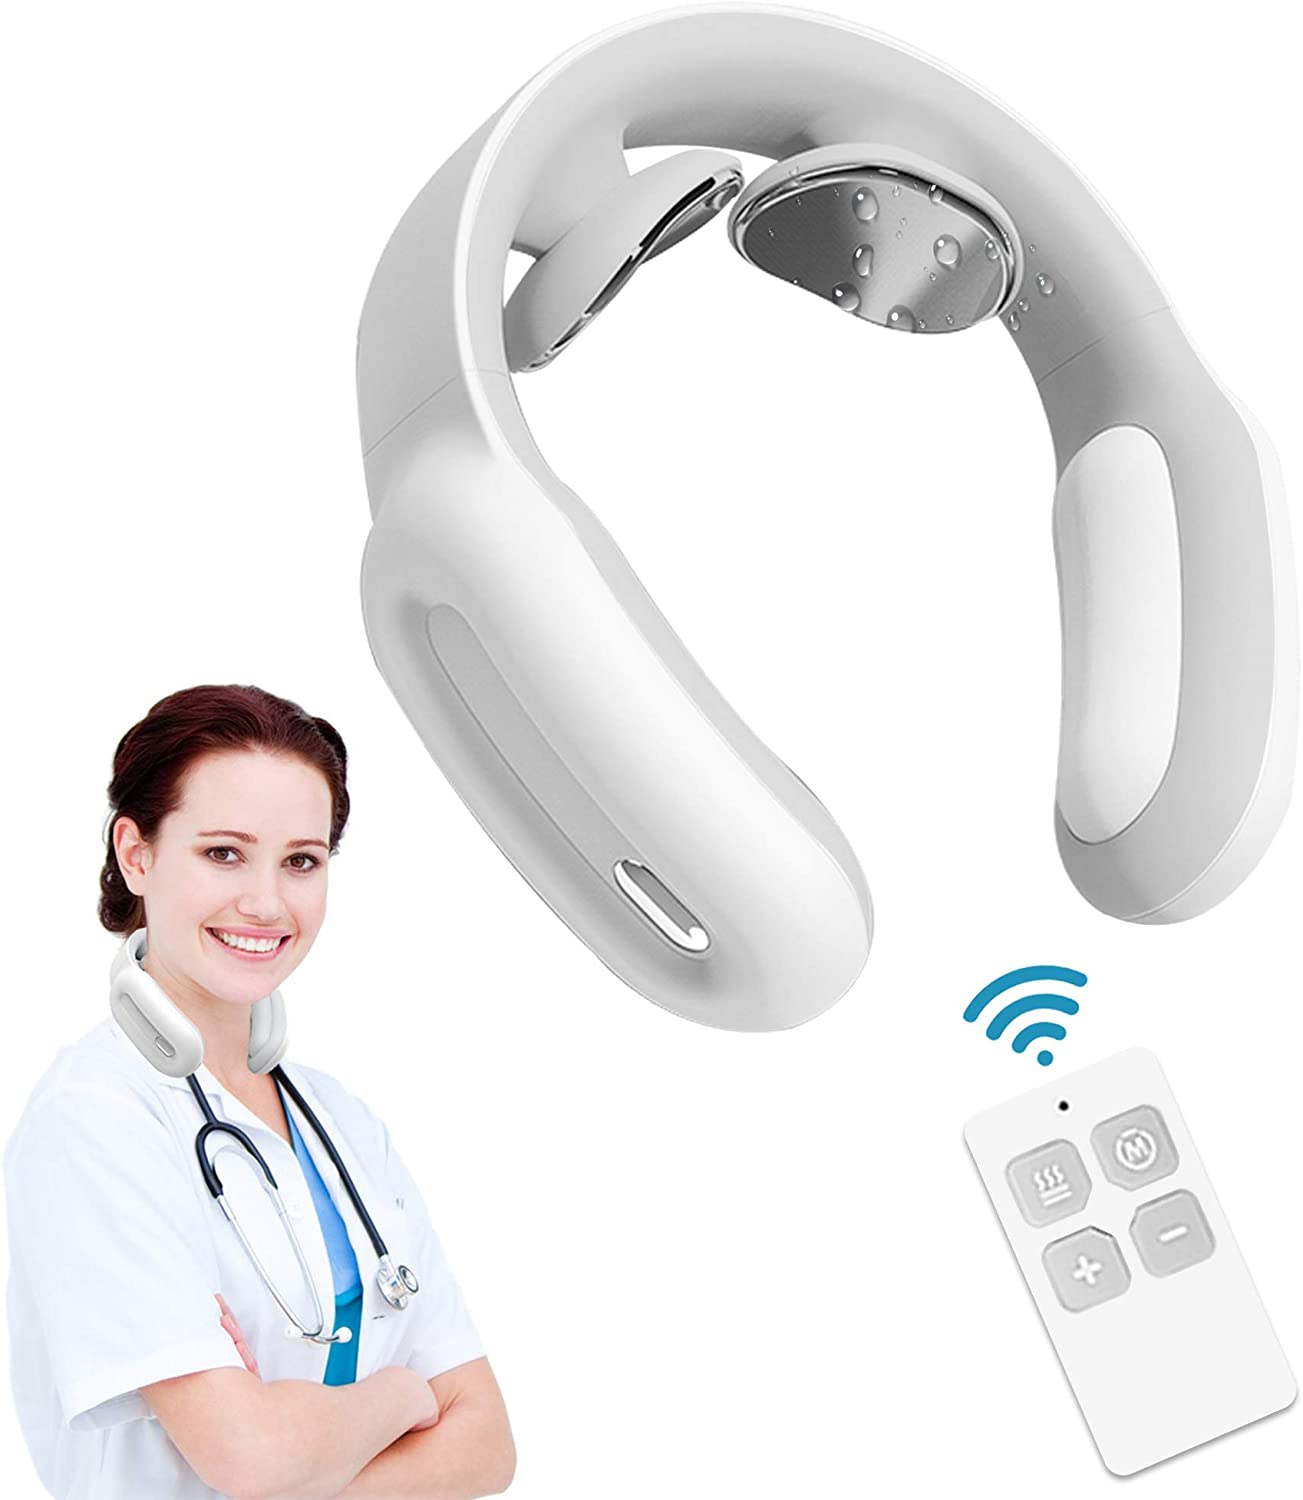 Neckology Massager for Neck with Electric Pulse Pain Relief, Intelligent Shiatsu Simulation with Heat, Mute Cordless Deep Kneading Massage in Home Office Car Travel(White N3000)